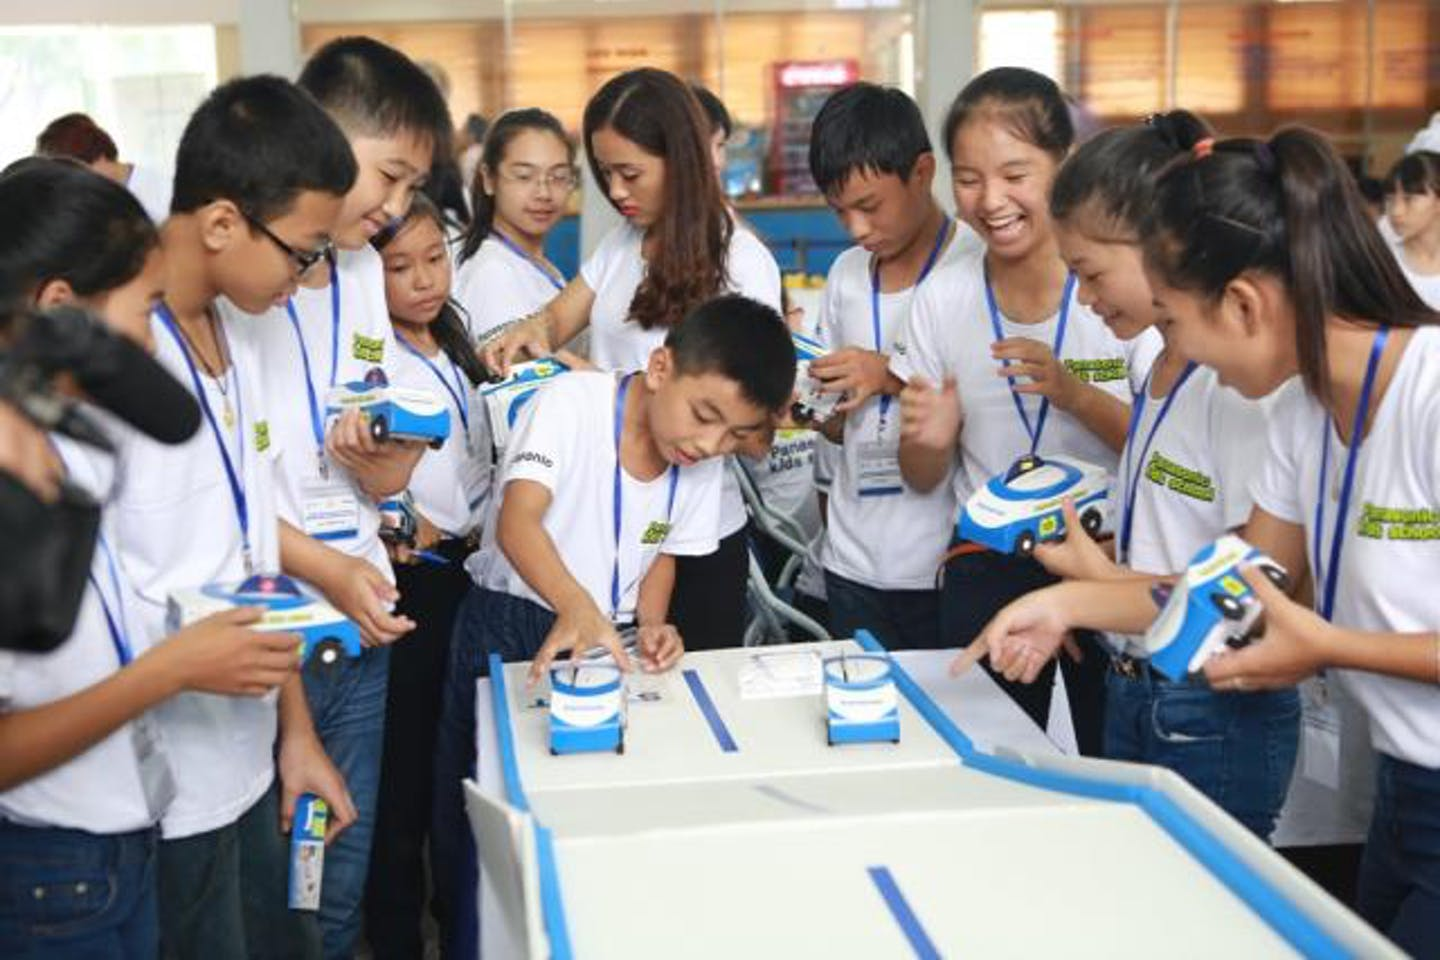 The Panasonic Kids School programme reached approximately 2.8 million young people around the world. Image: Panasonic